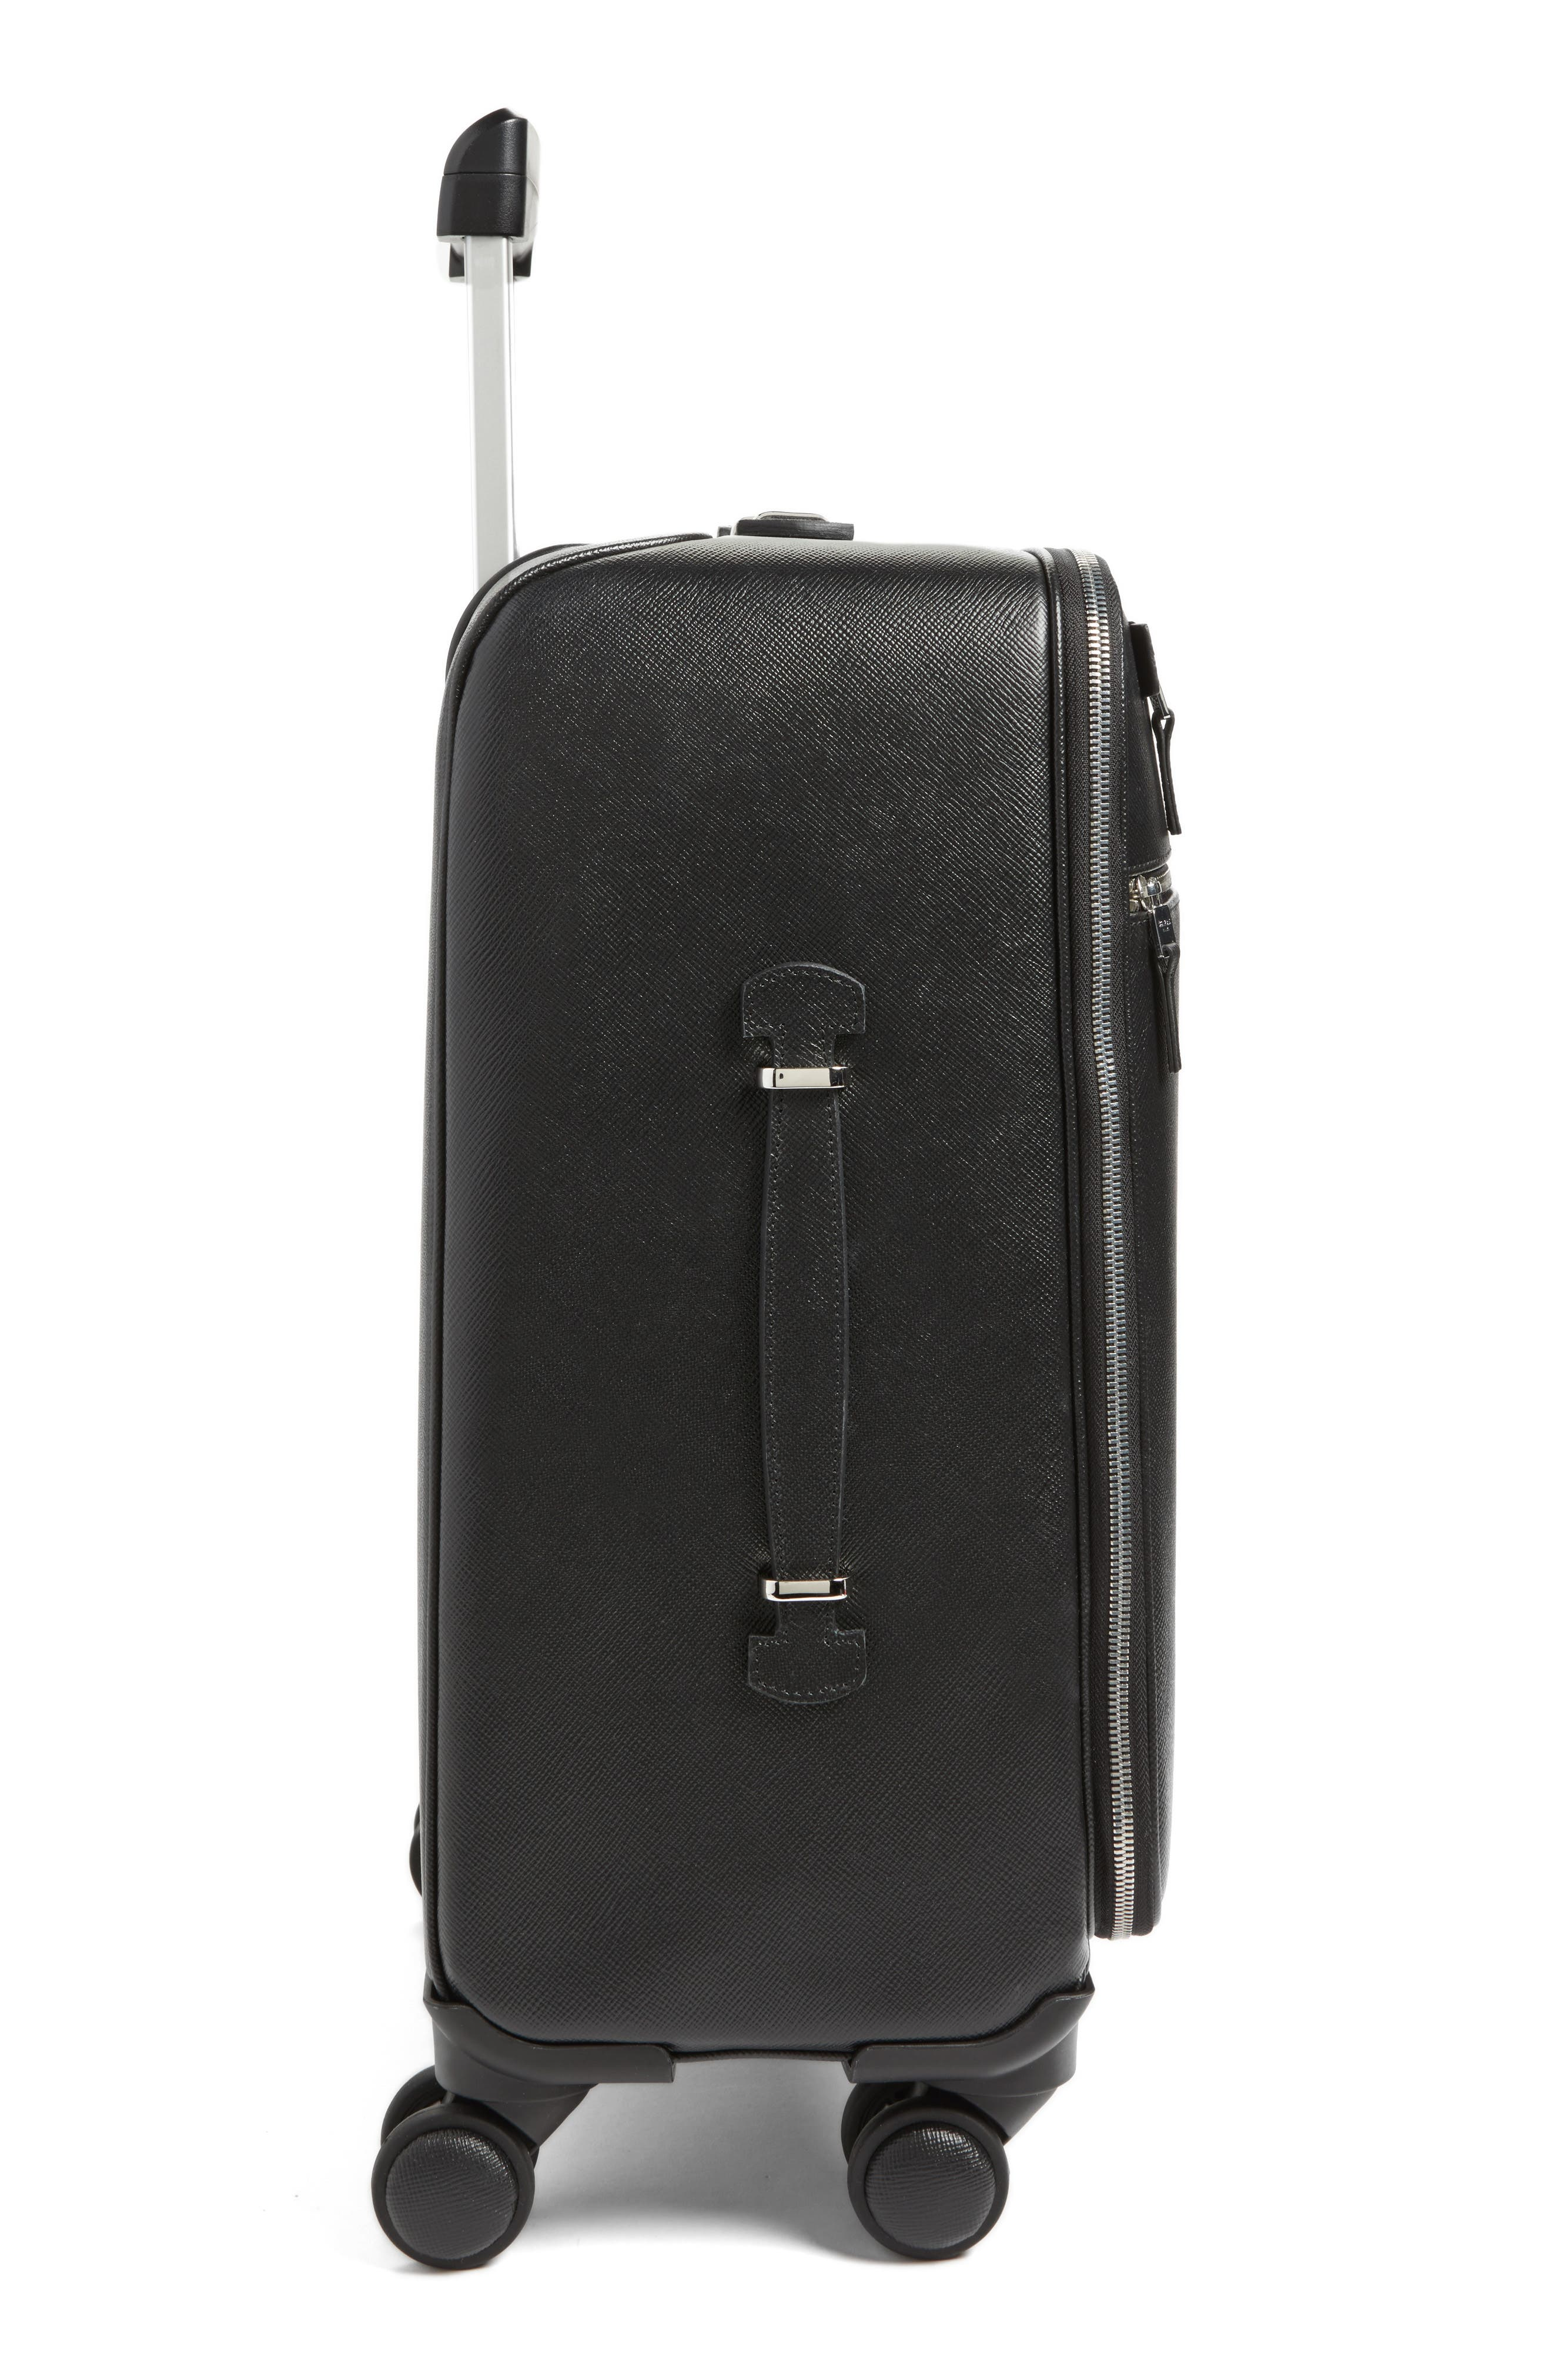 Trolley 18-Inch Spinner Wheeled Carry-On Suitcase,                             Alternate thumbnail 4, color,                             BLACK